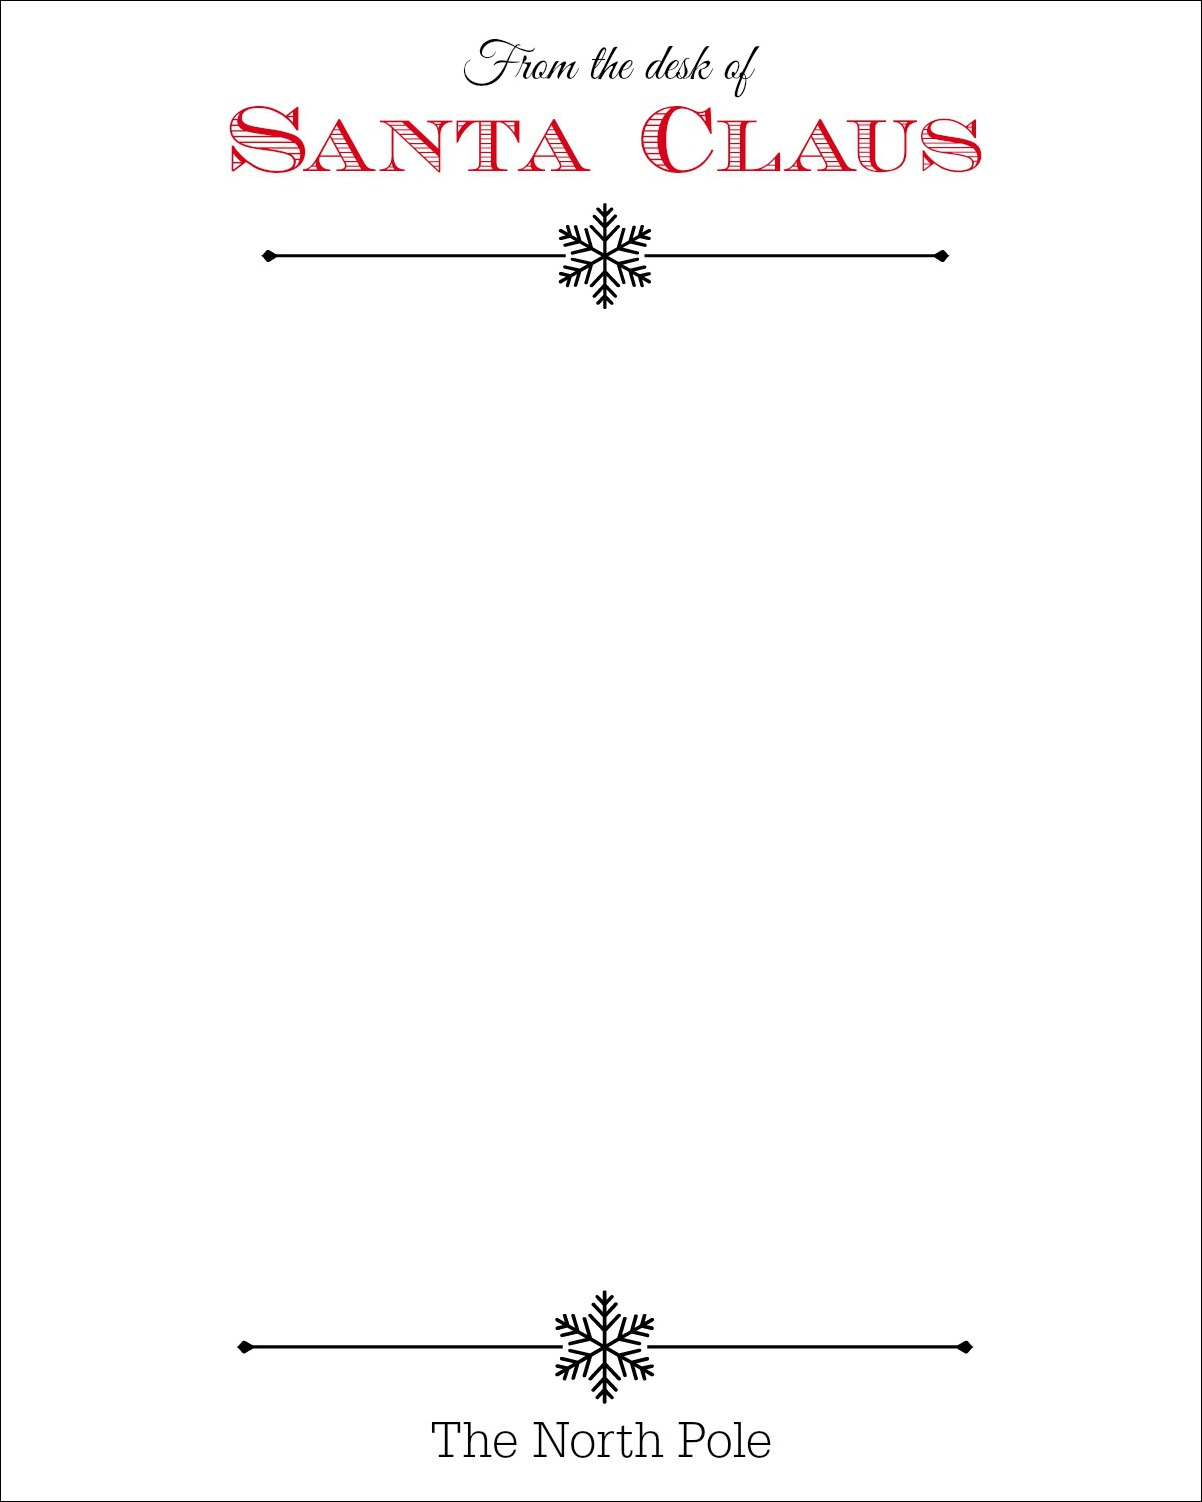 Santa+Claus+Stationary Official Letter From Santa Template Stationery on for word, writing paper,